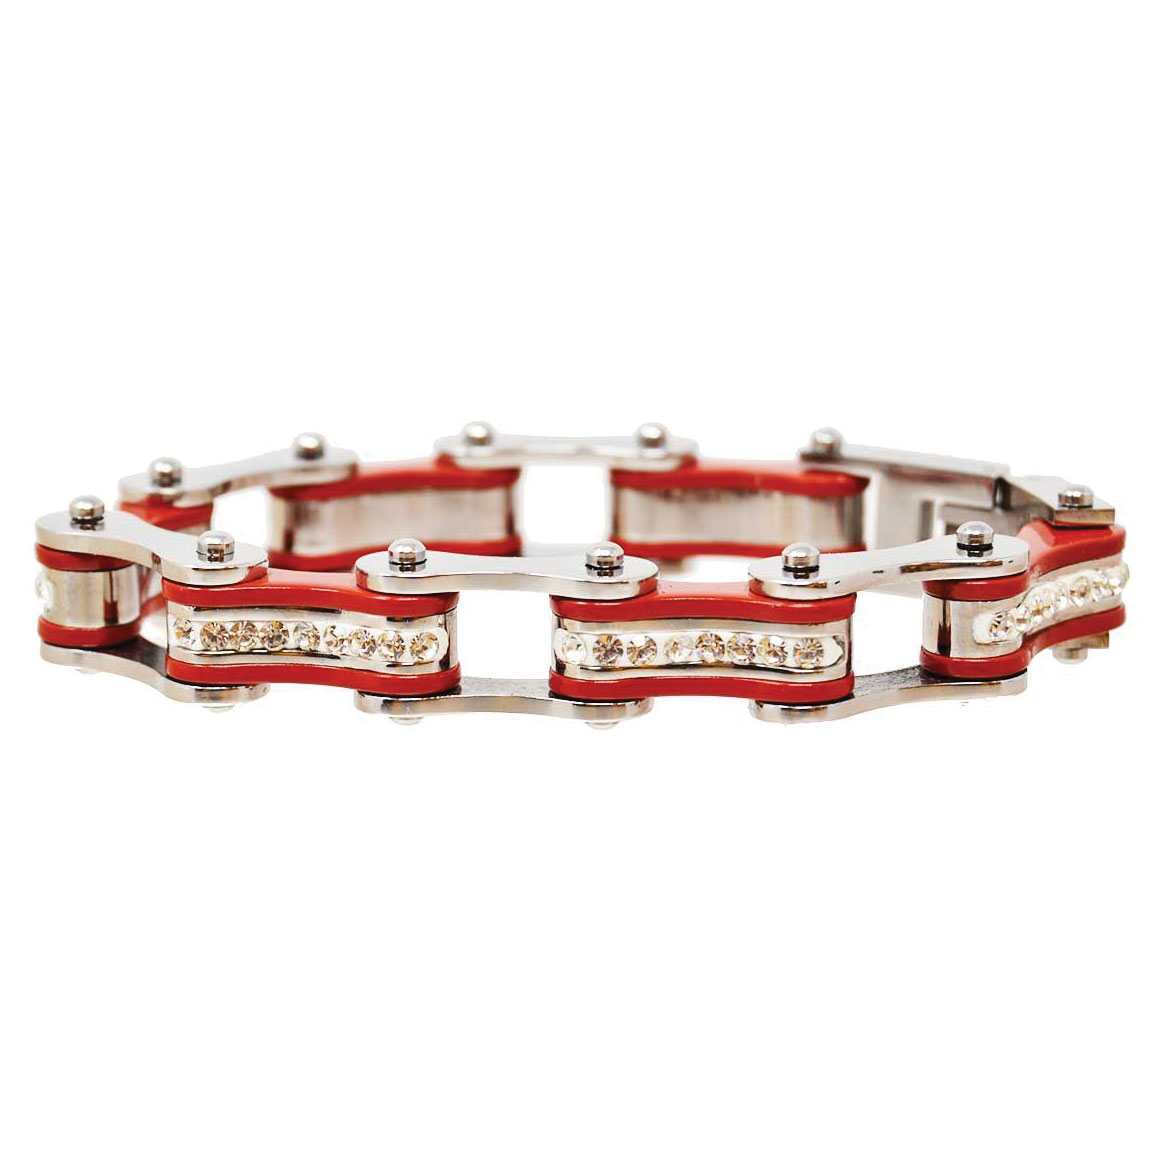 Vance Leathers Silver/Red Bracelet with Crystal Links